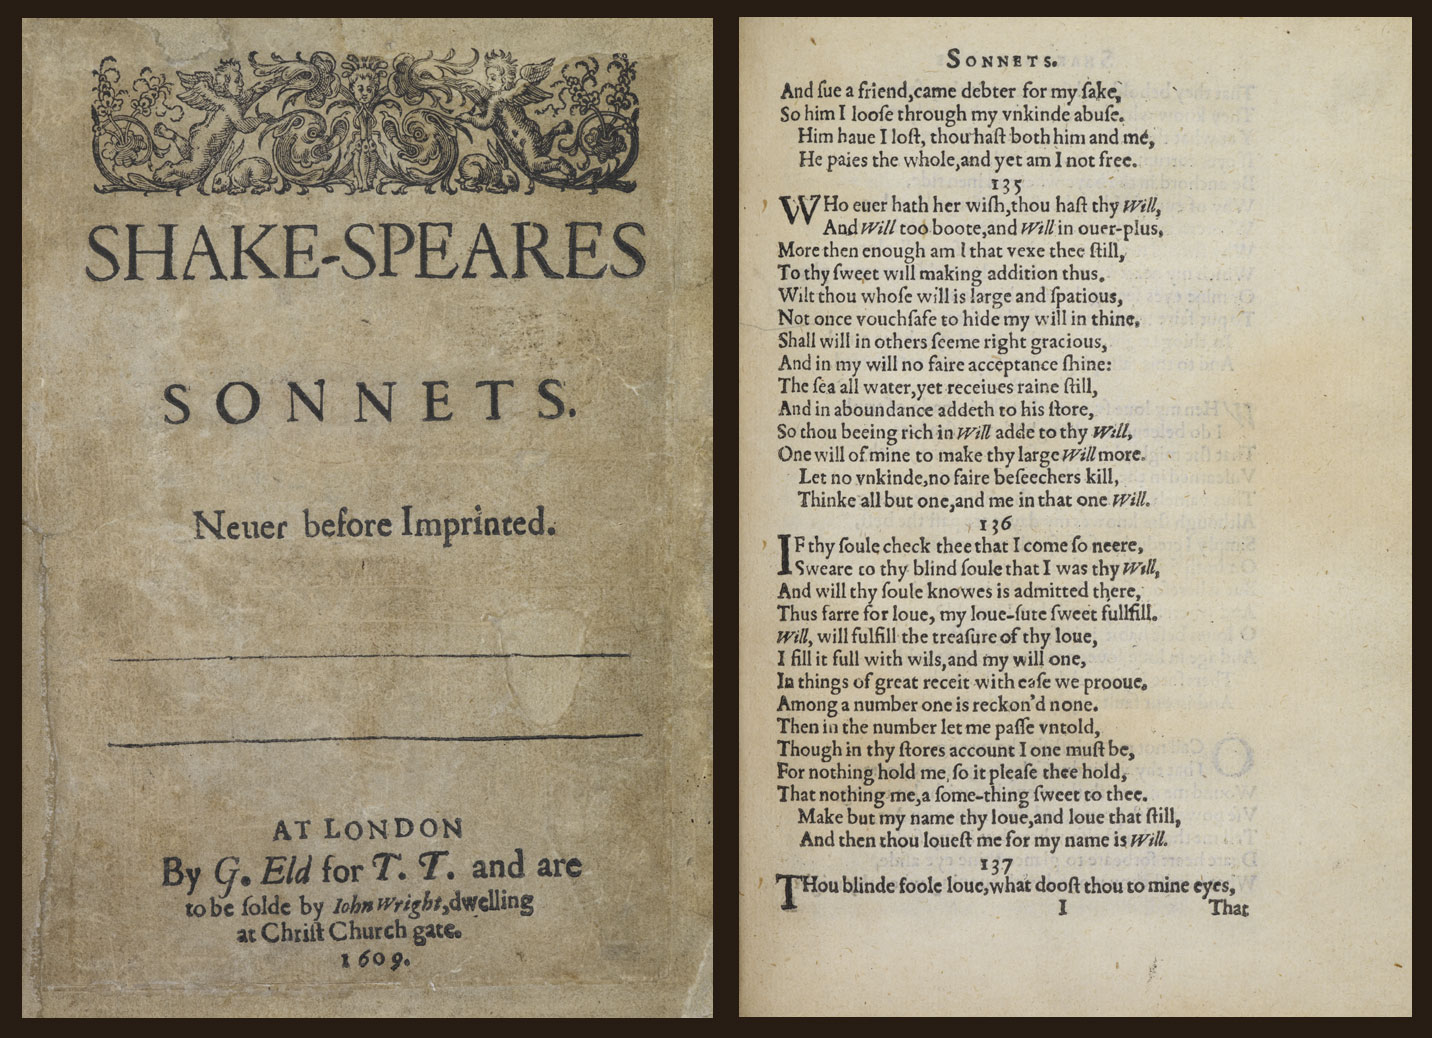 Much of sonnet 116 is given